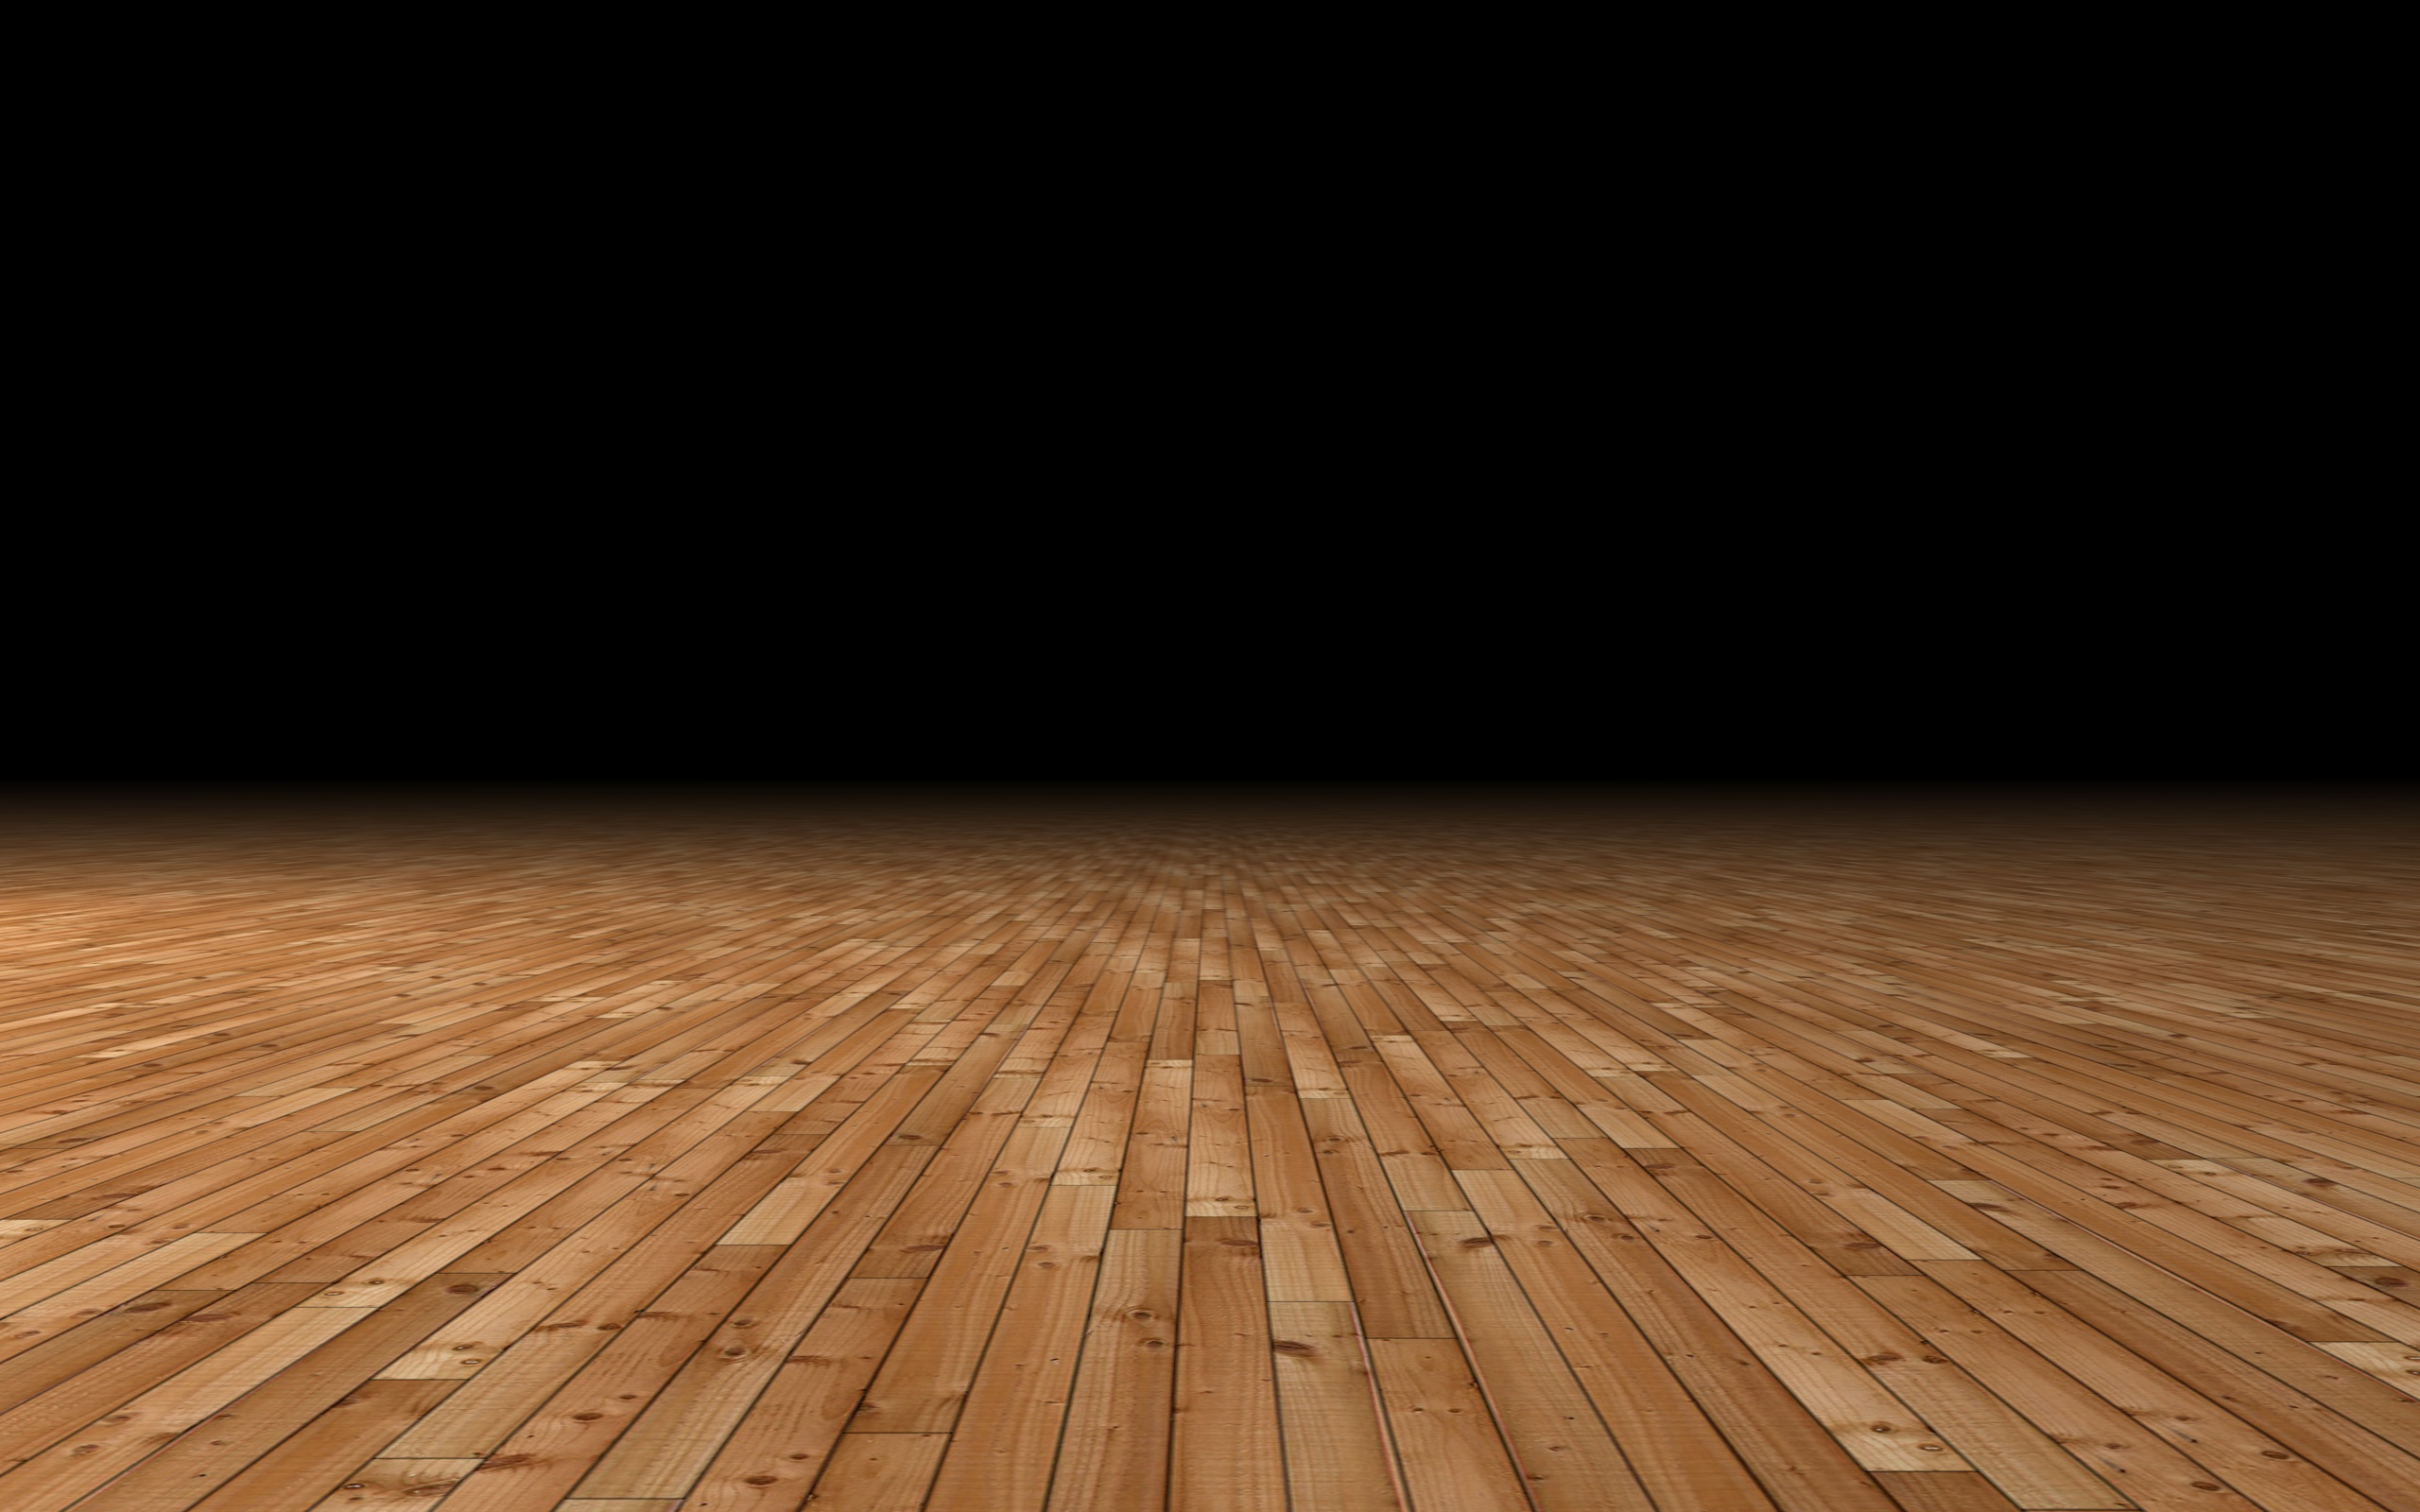 basketball-court-floor-texture-61182.jpg - WearTesters